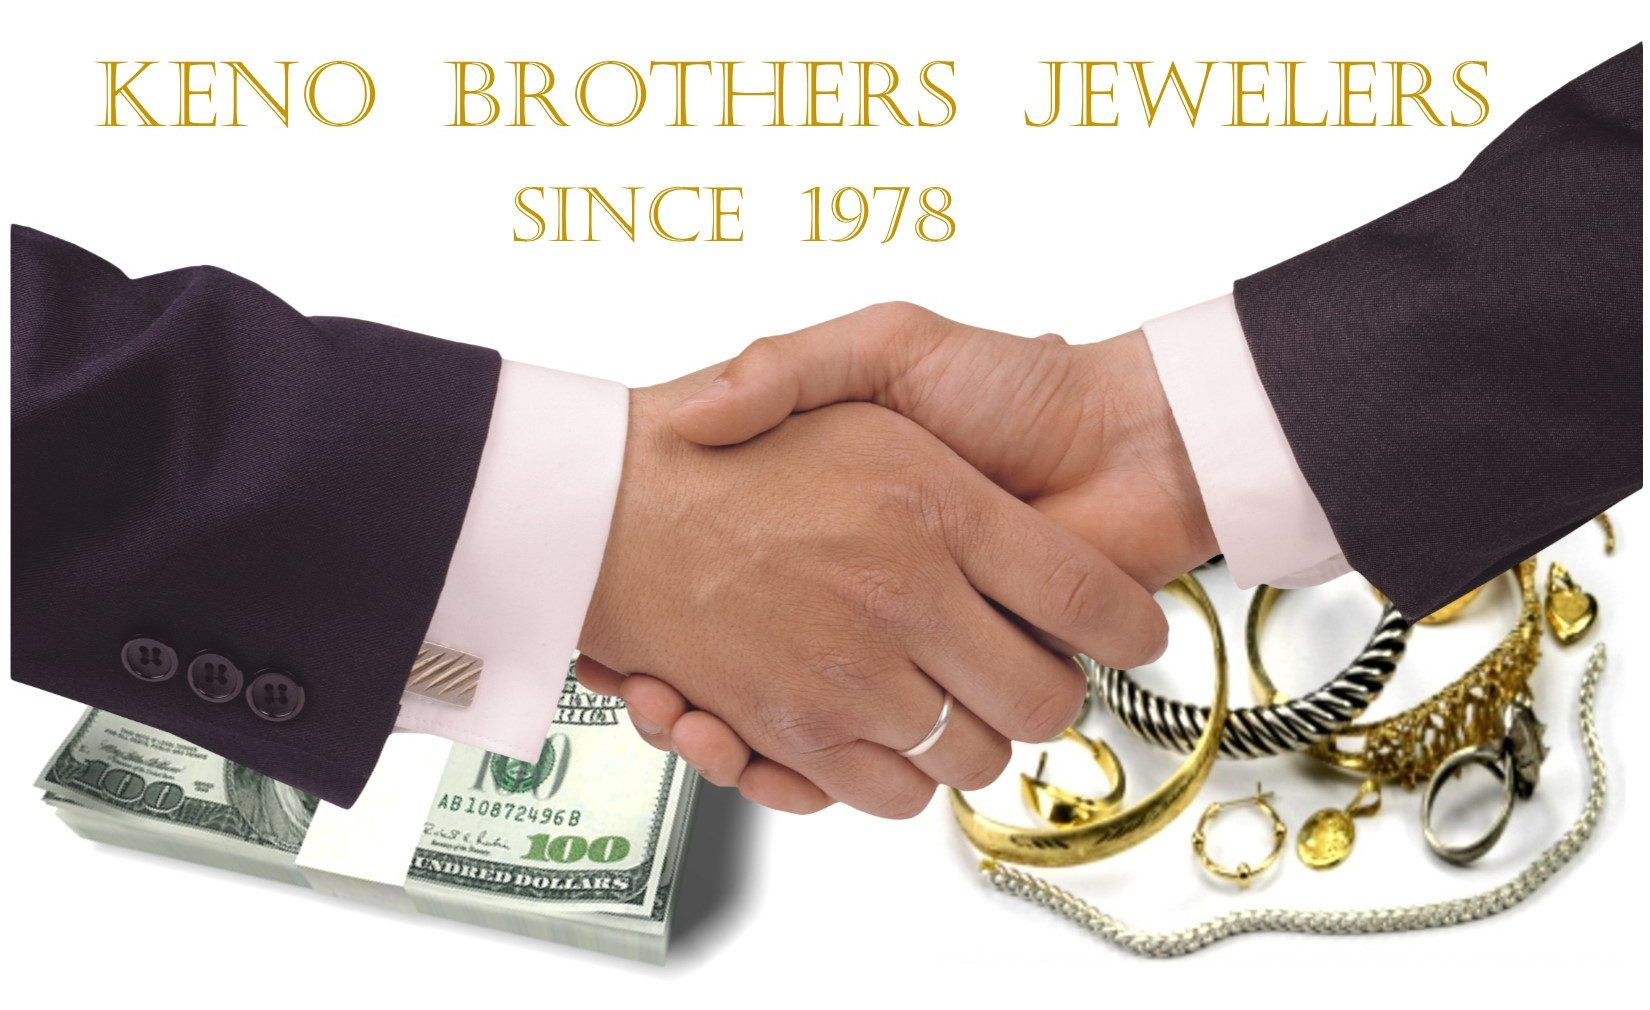 Fort Lauderdale Jewelry Loans - Keno Brothers Jewelry